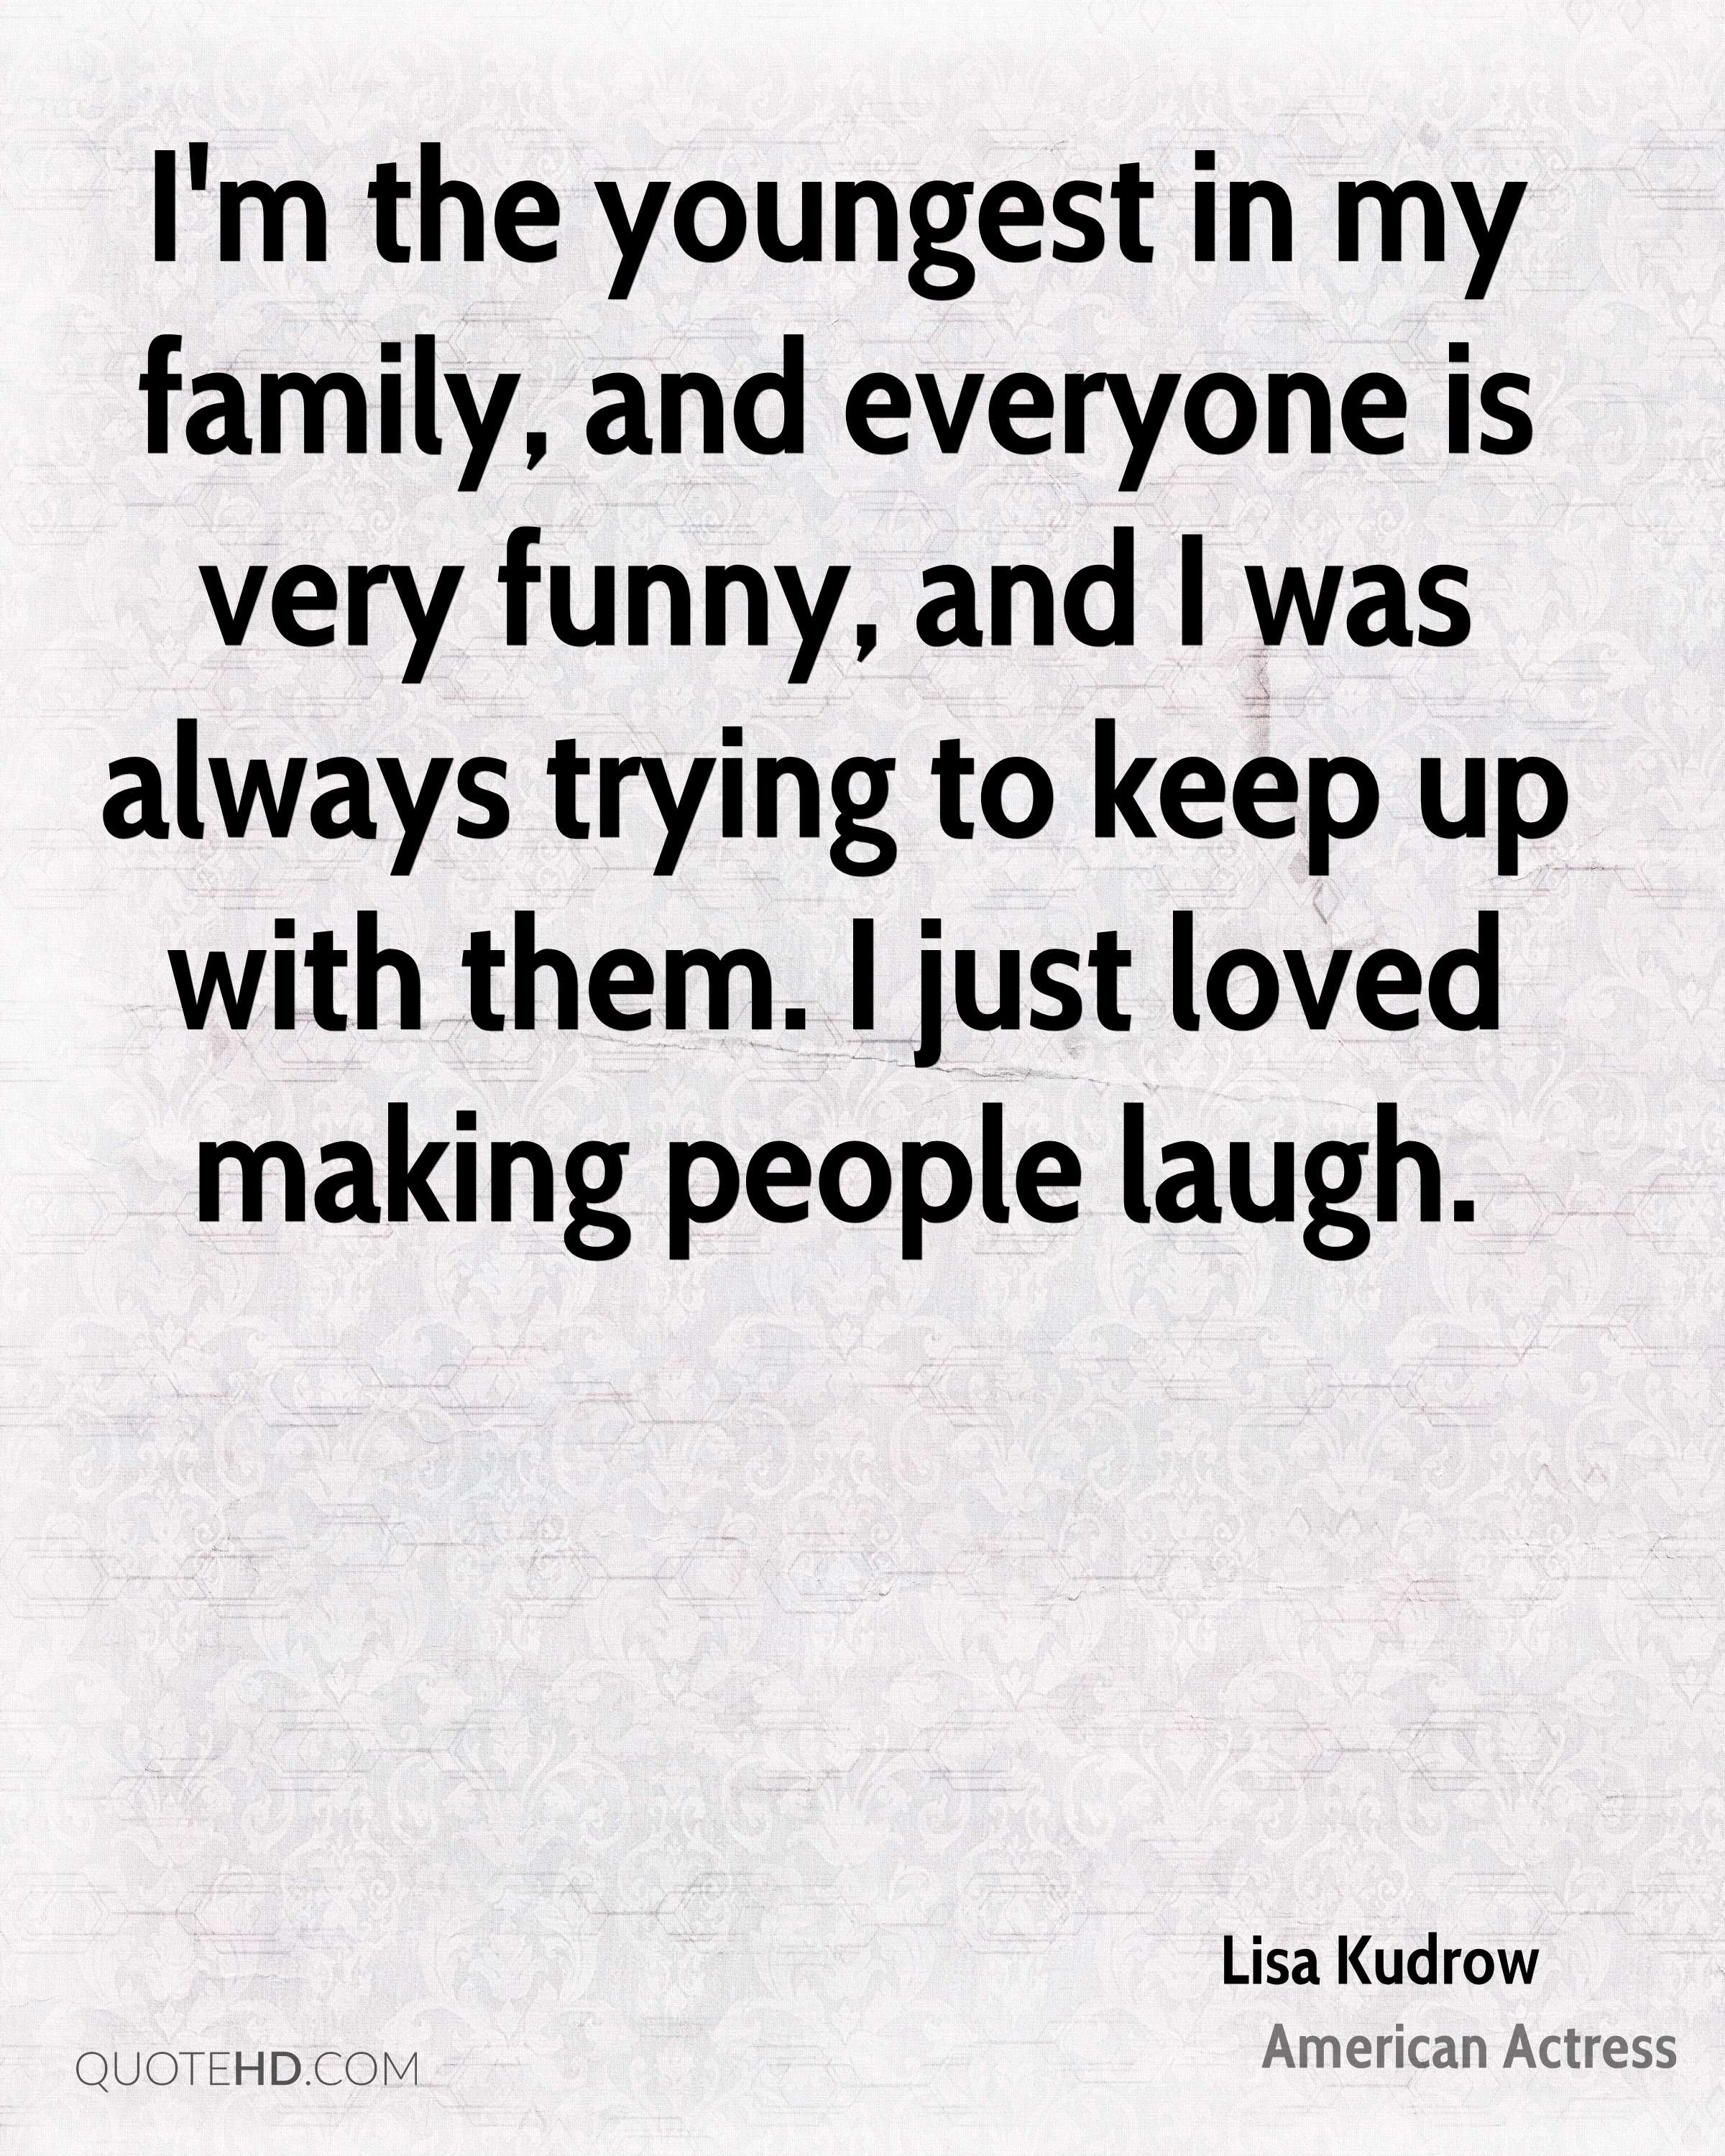 I'm the youngest in my family, and everyone is very funny, and I was always trying to keep up with them. I just loved making people laugh.